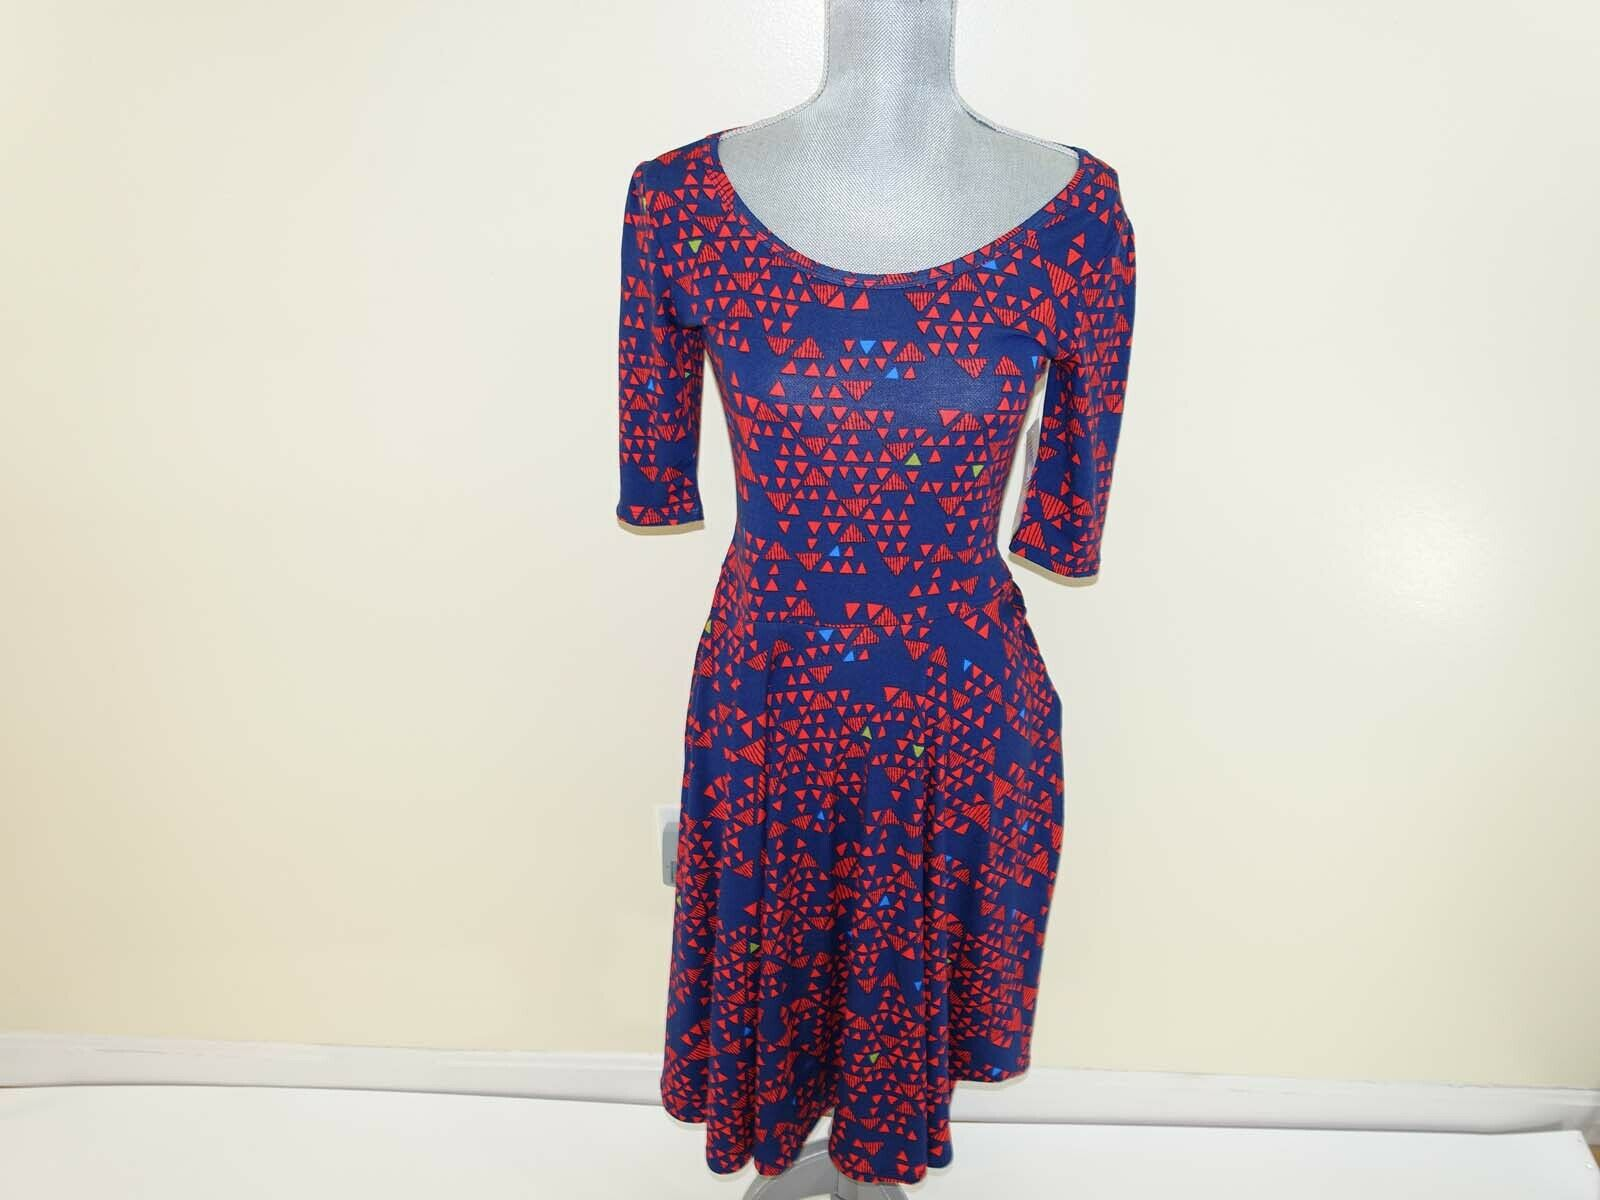 LuLaRoe Women's Nicole Fit & Flare Dress Small NWT Short Sleeves Navy bluee Red s